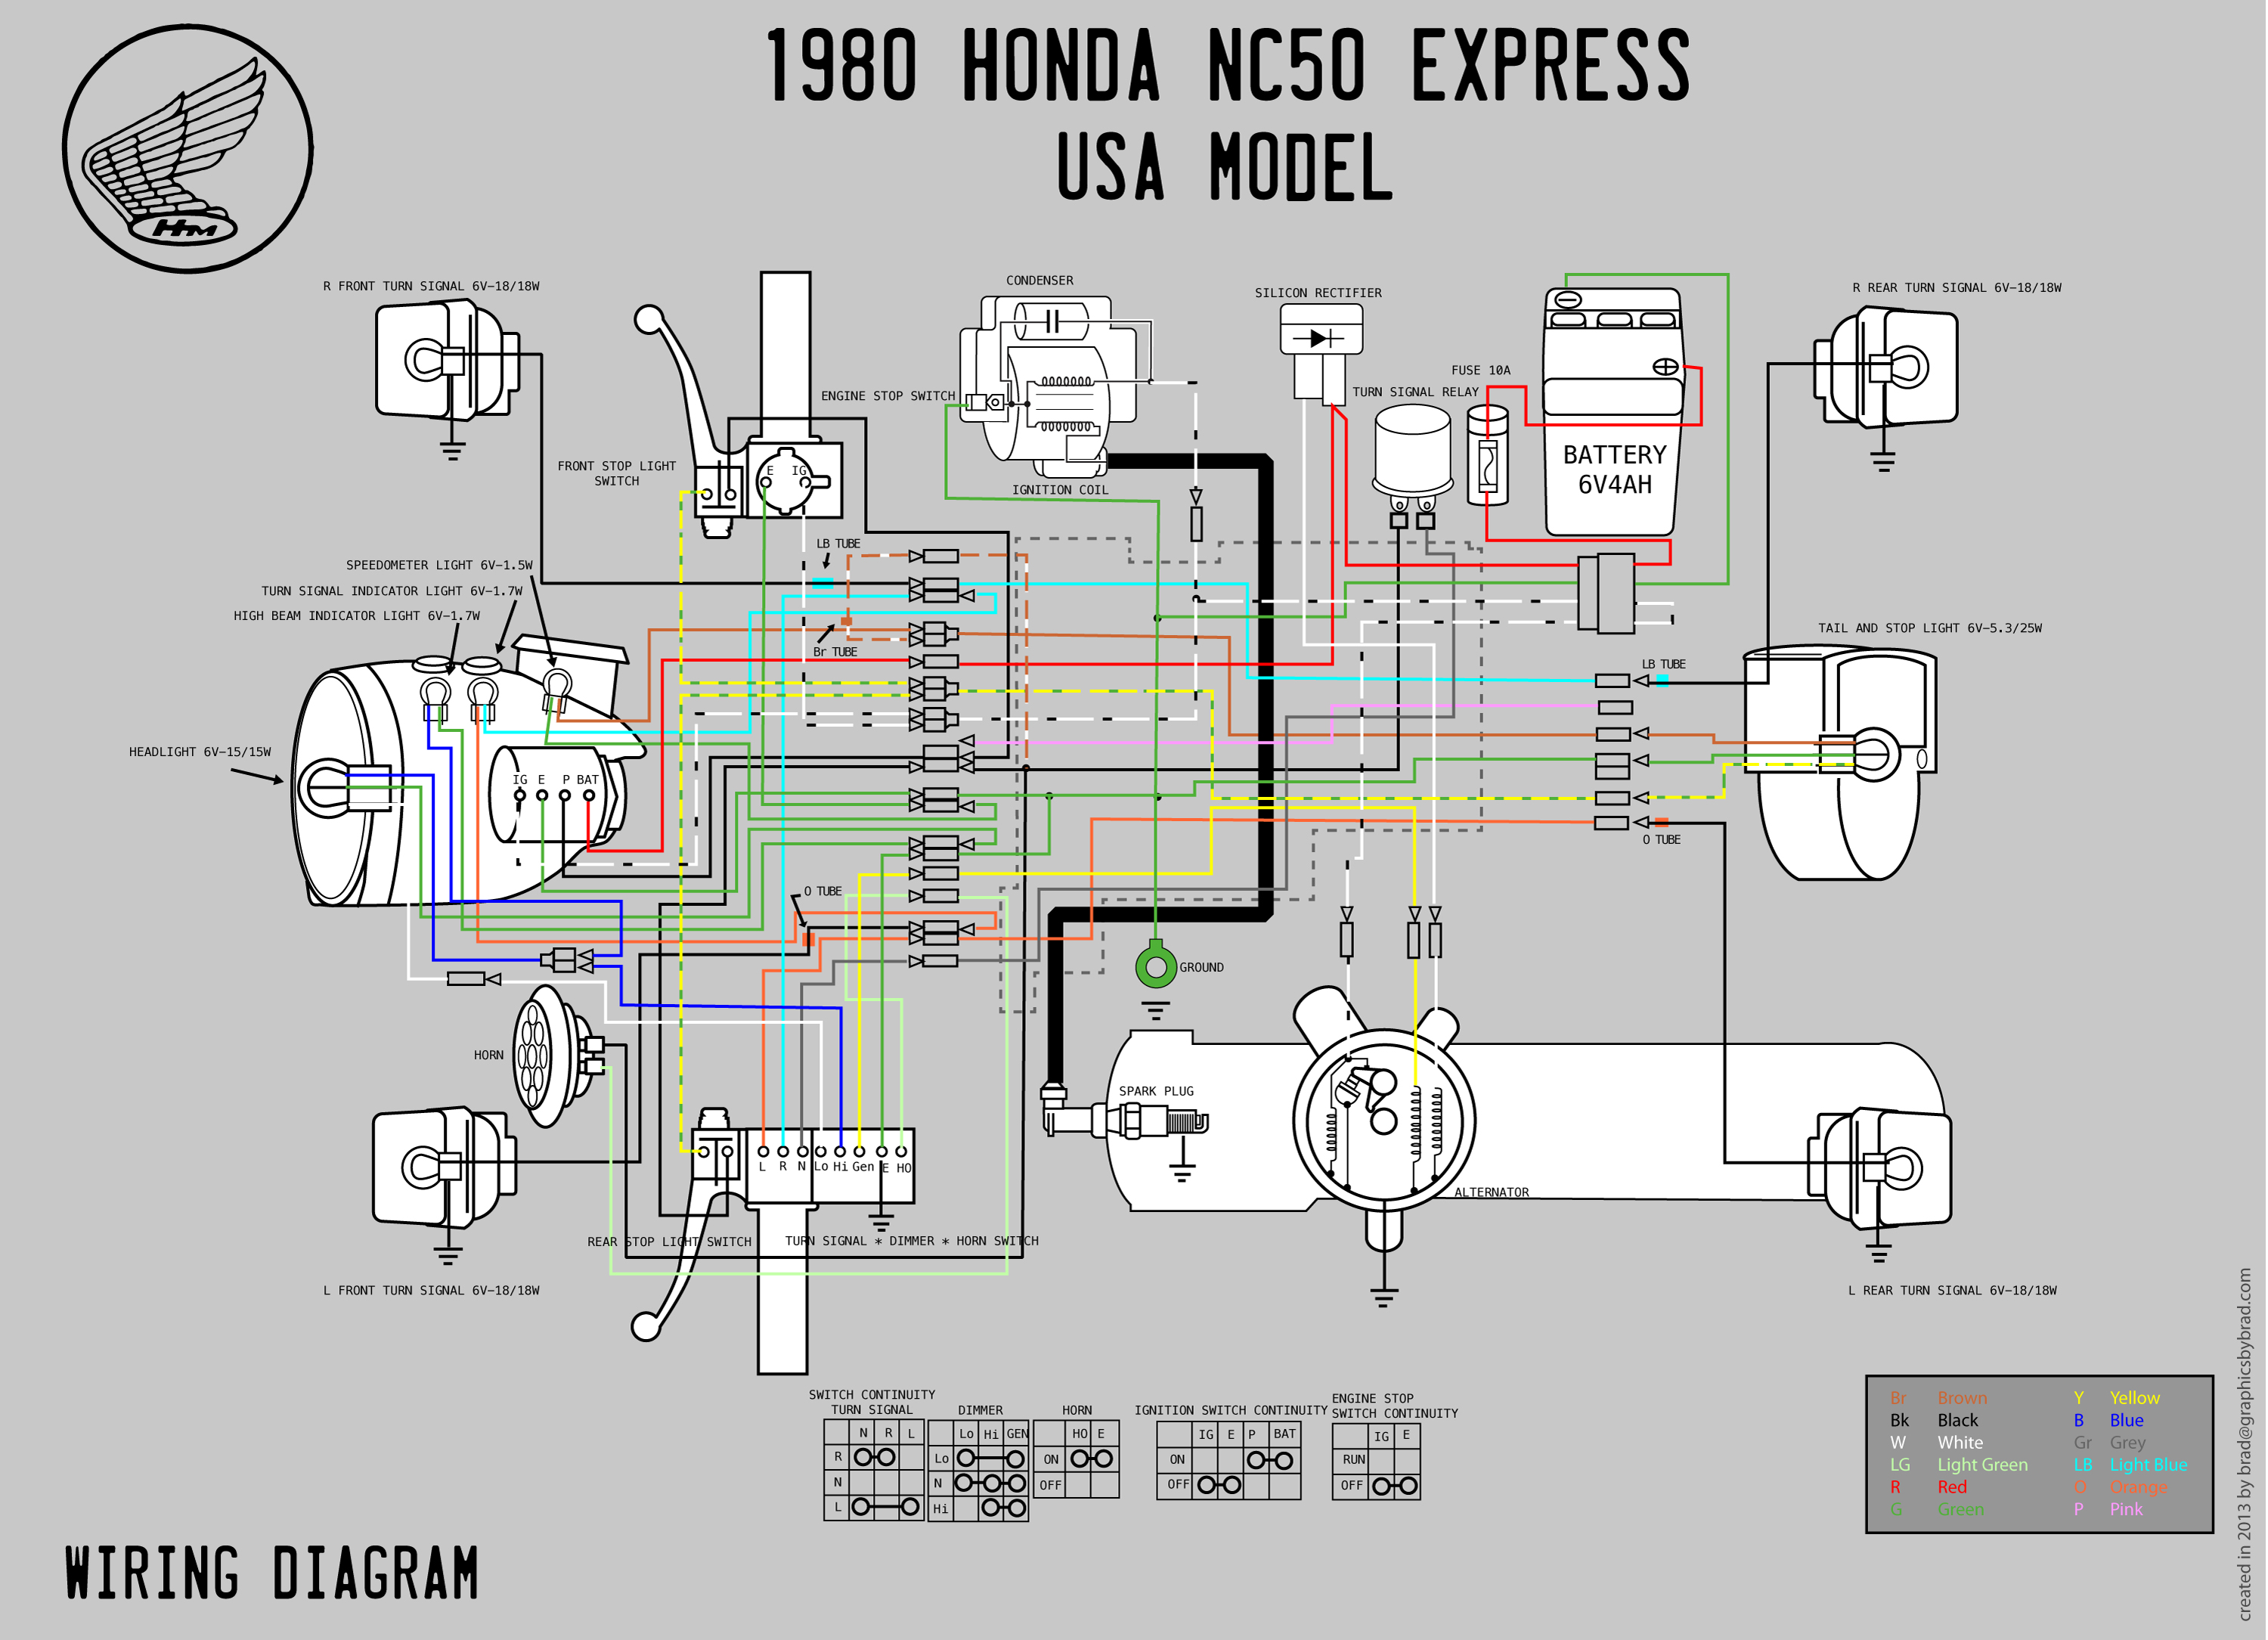 1980 nc50 wiring lrg 1980 honda express wiring diagram 1980 wiring diagrams collection tg1 express wiring diagram at mr168.co